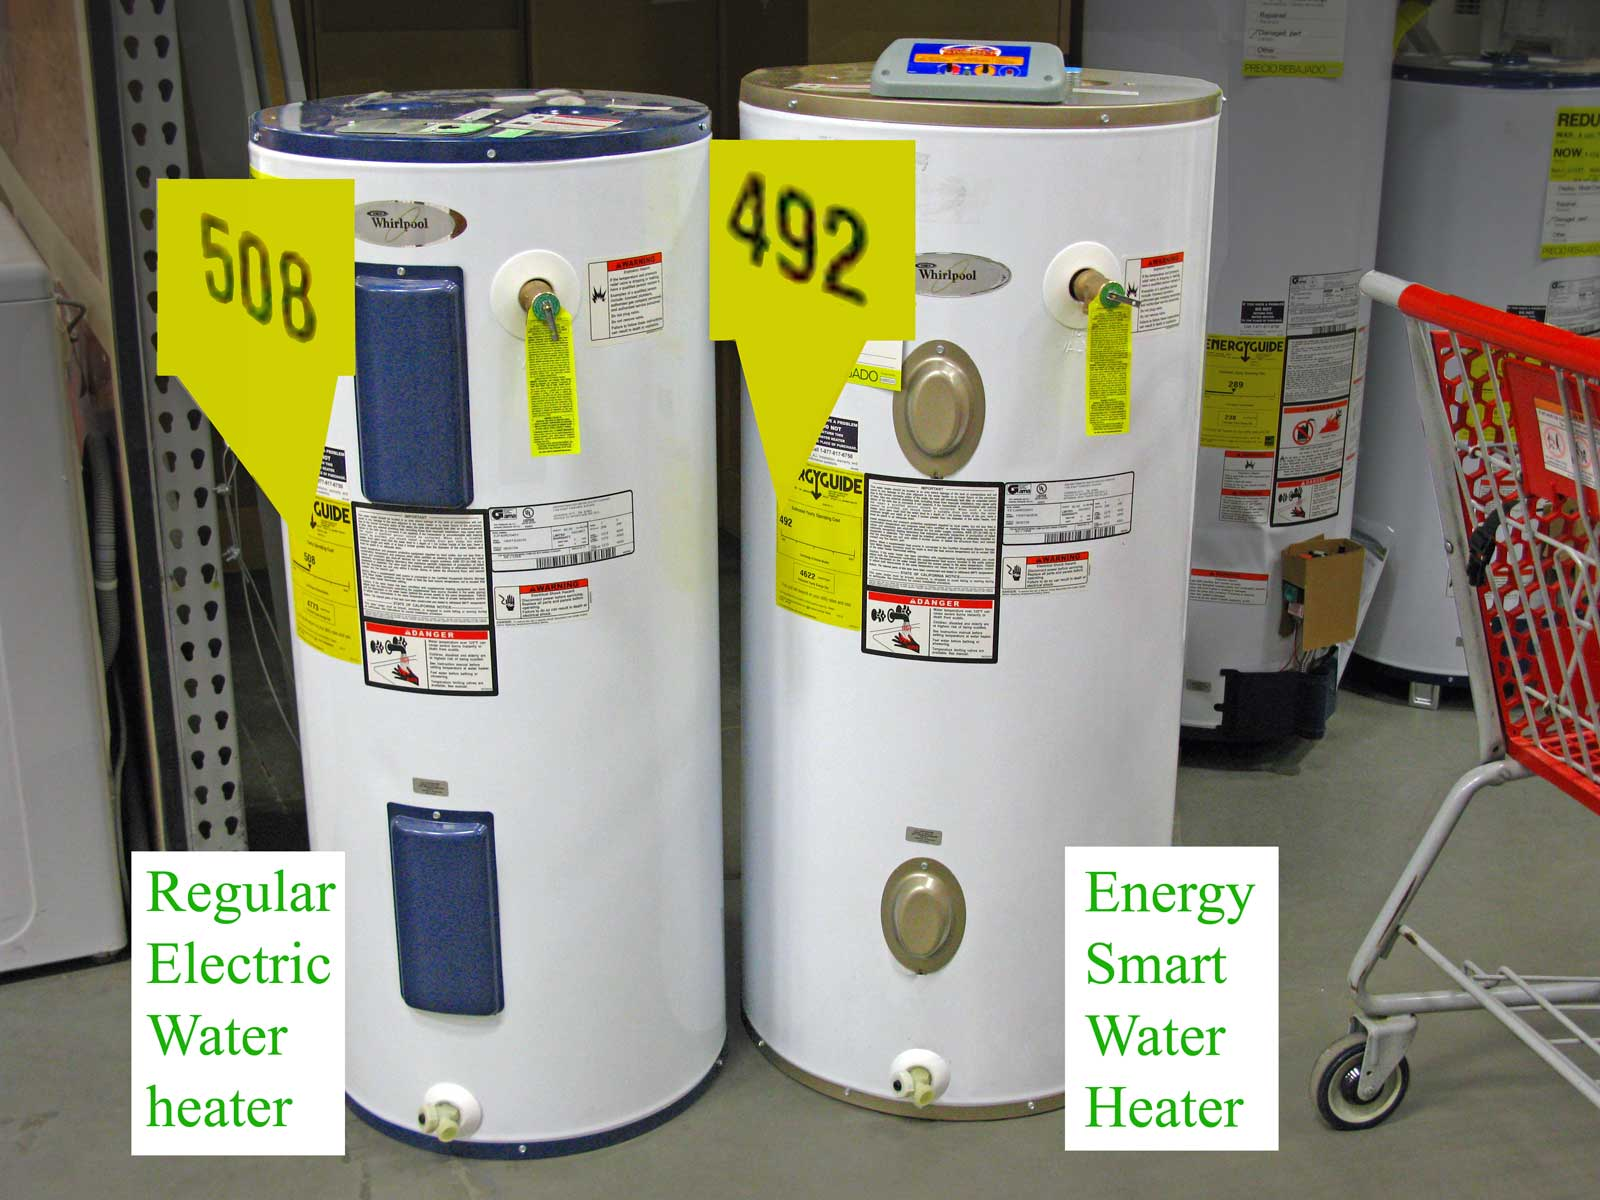 whirlpool energy smart water heater